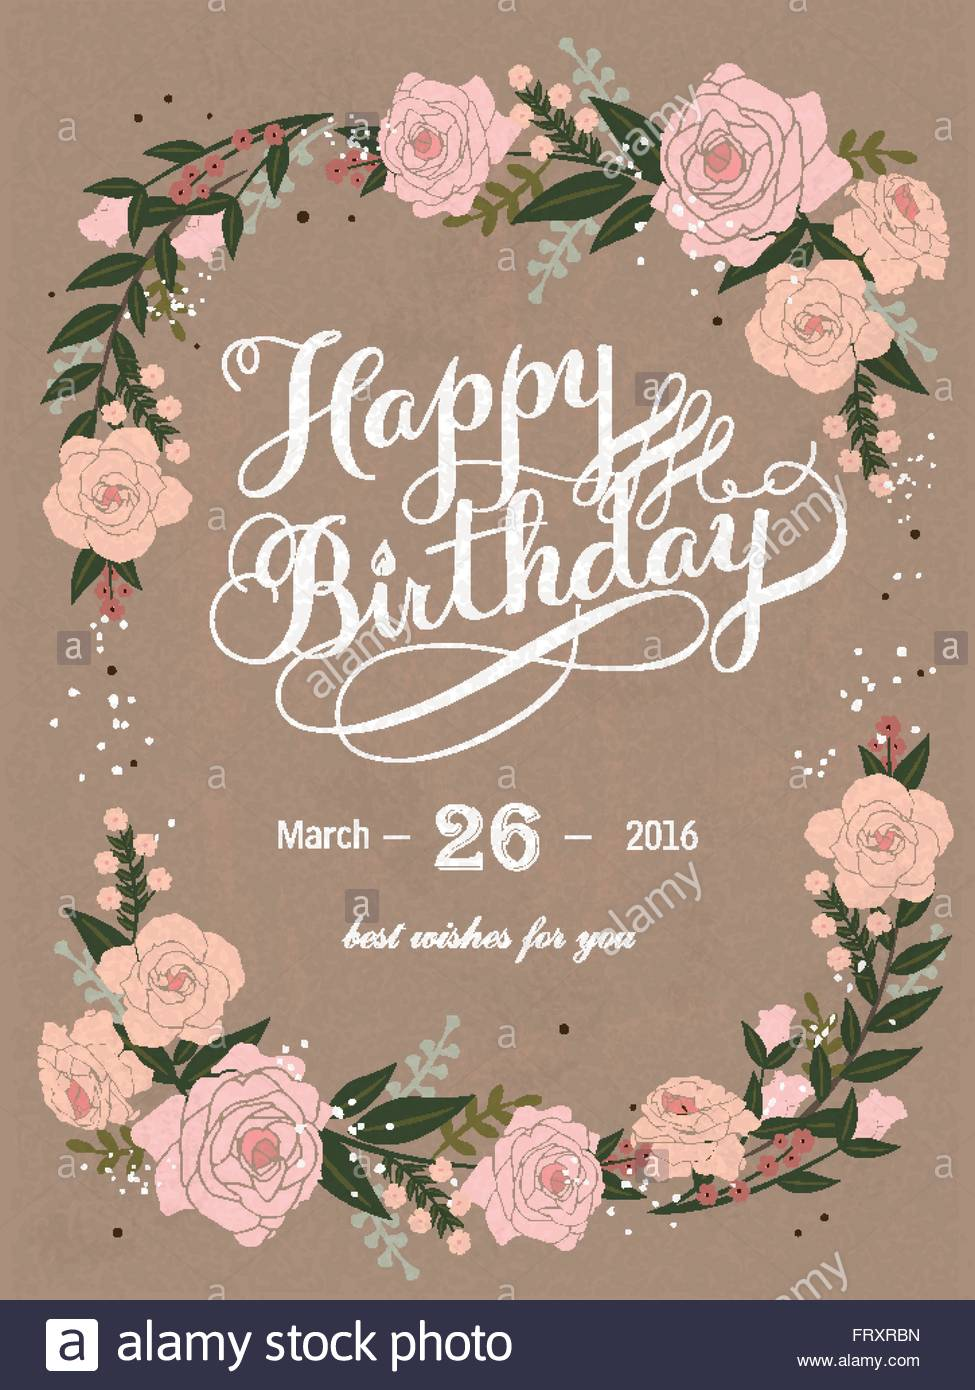 happy birthday poster with photo ; romantic-happy-birthday-calligraphy-and-poster-design-with-floral-FRXRBN